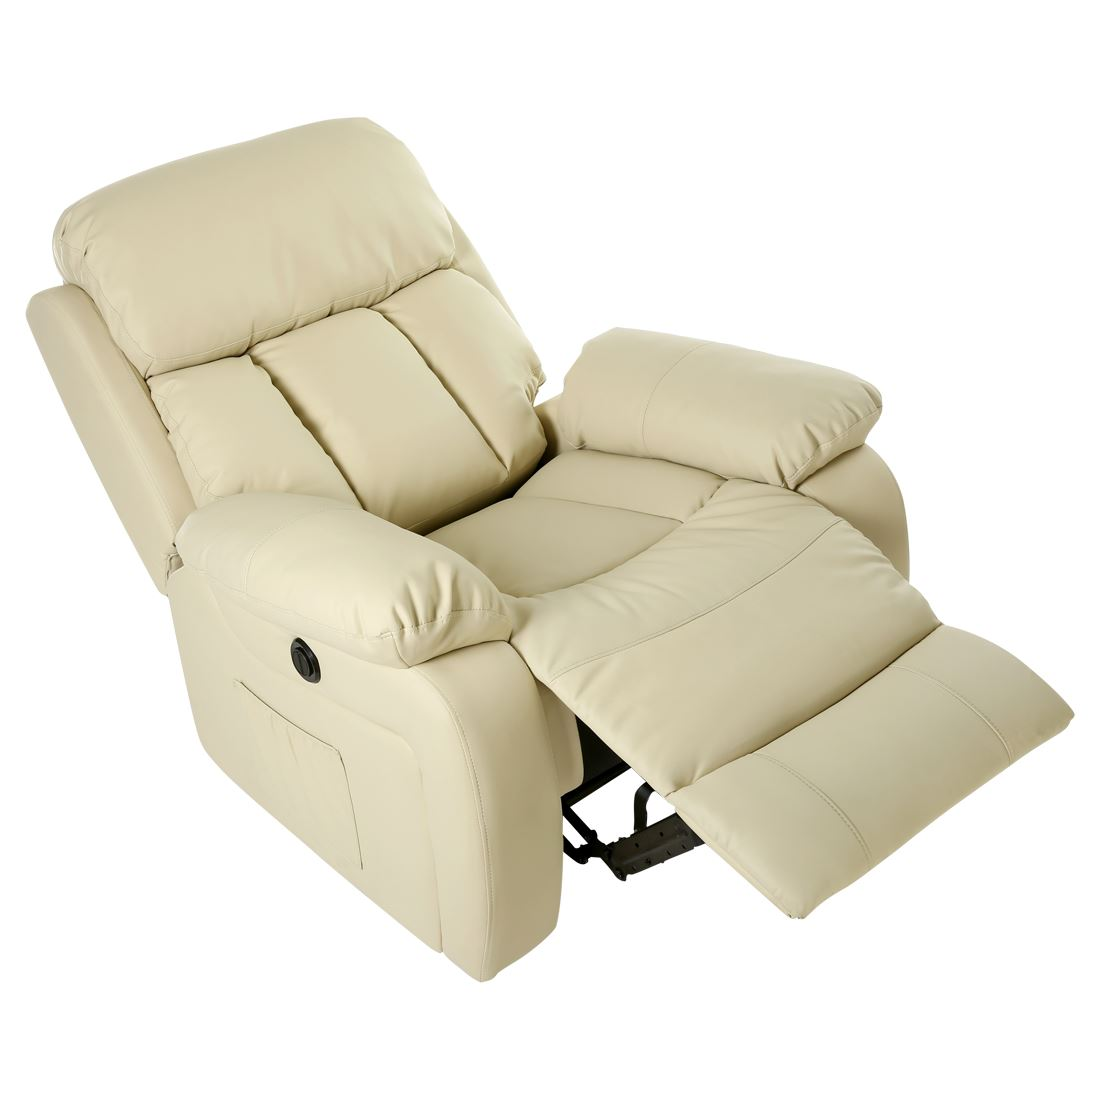 heated sofa recliner shallow sectional chester electric leather massage chair